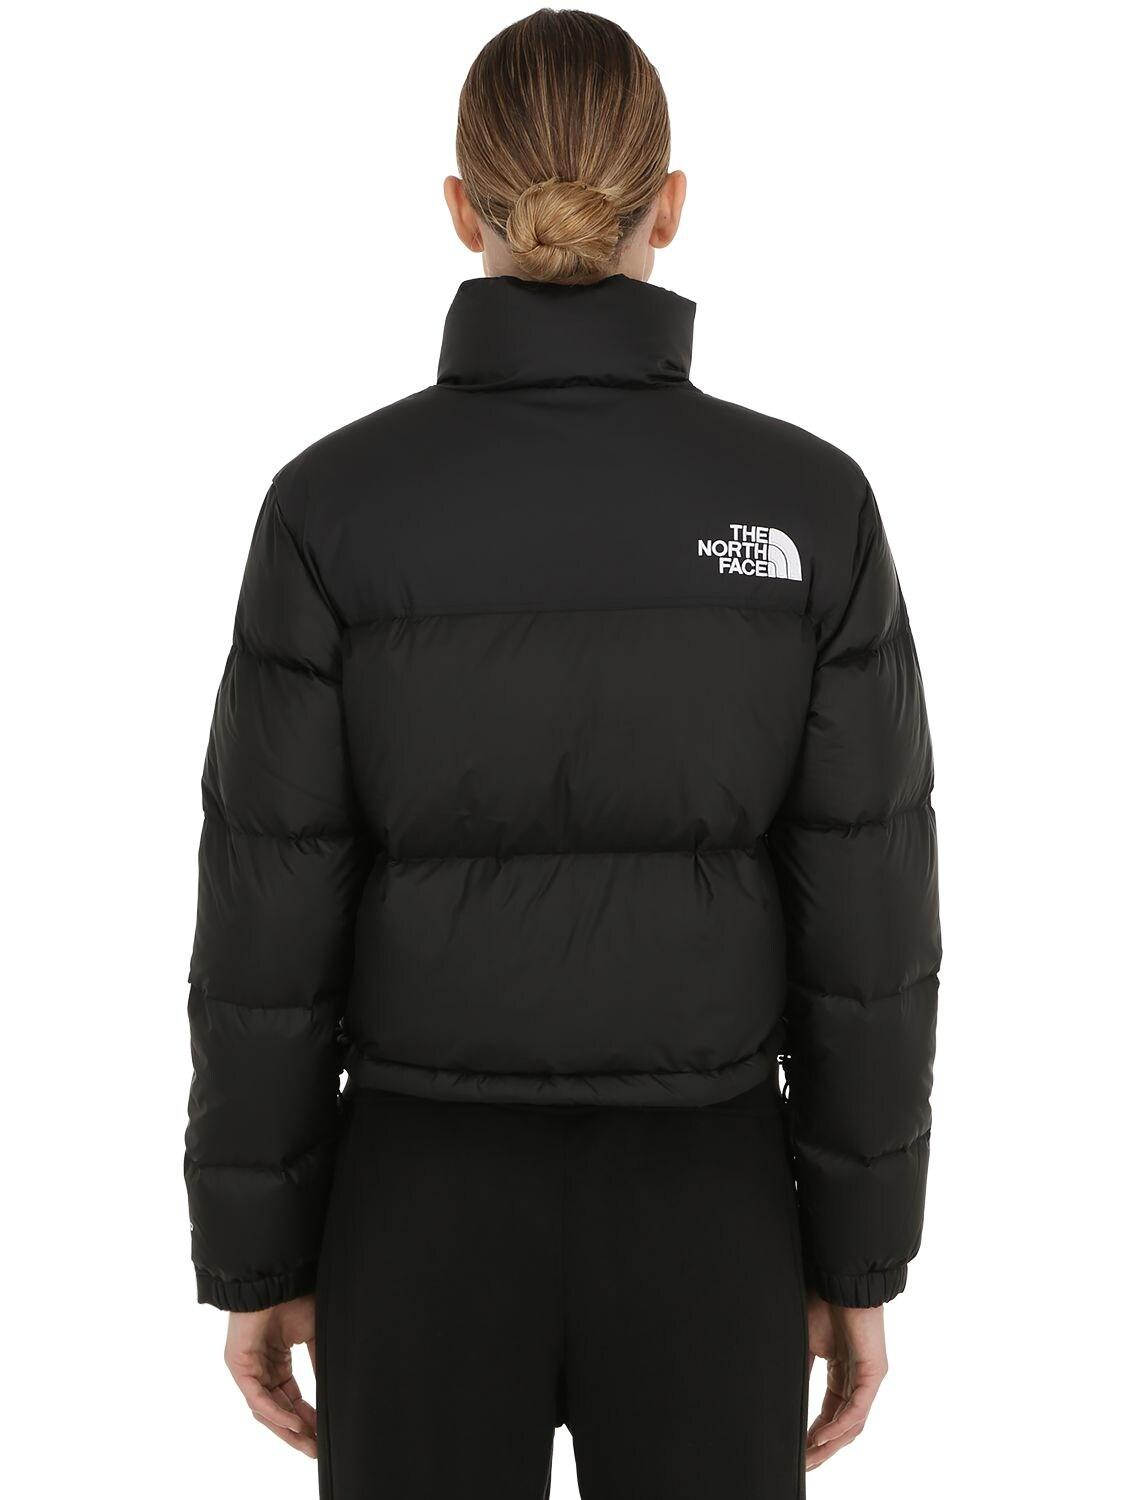 the north face 美 版